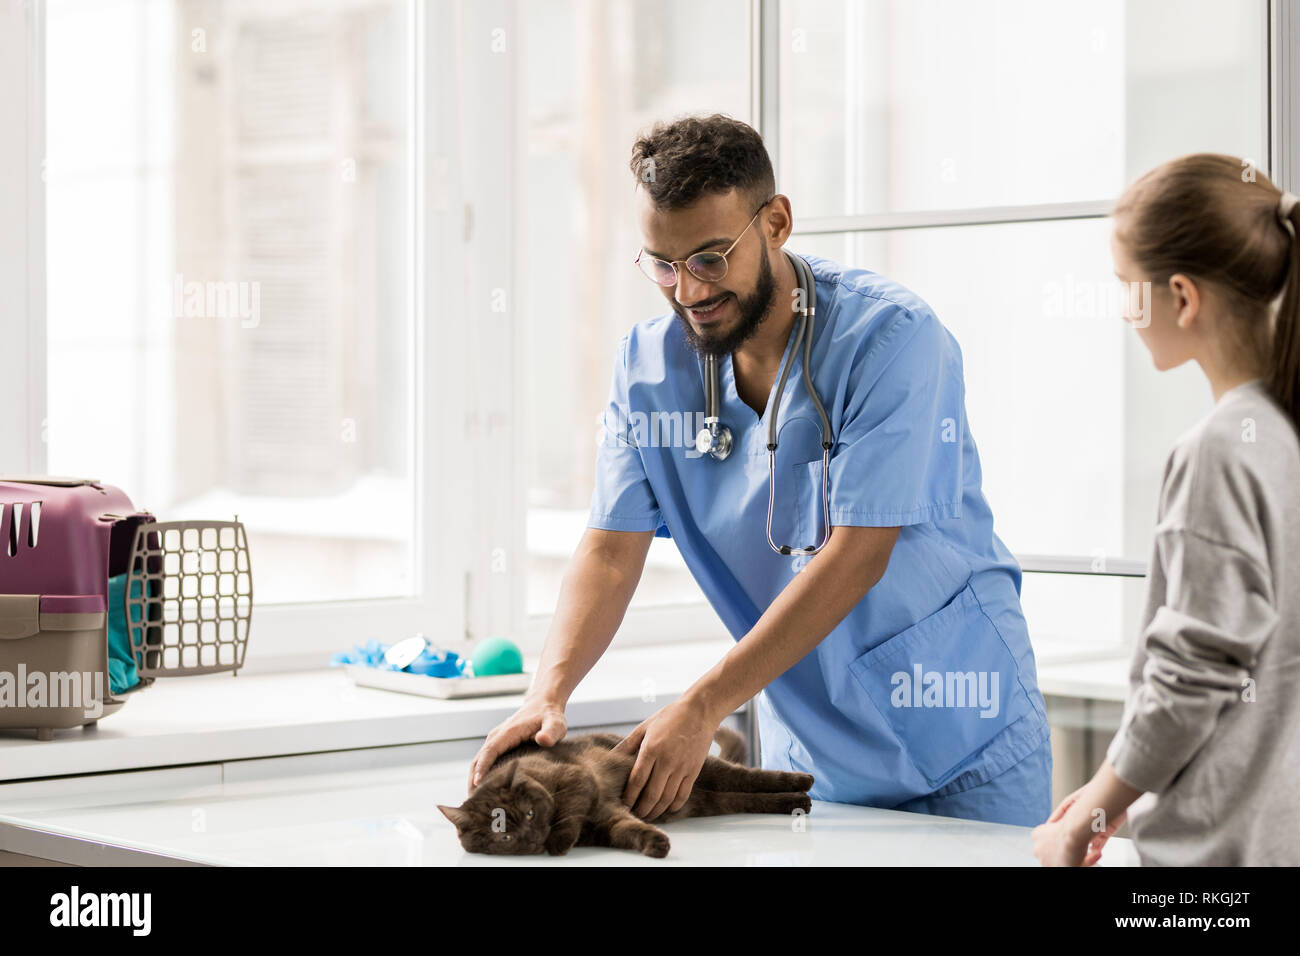 Visiting veterinarian - Stock Image